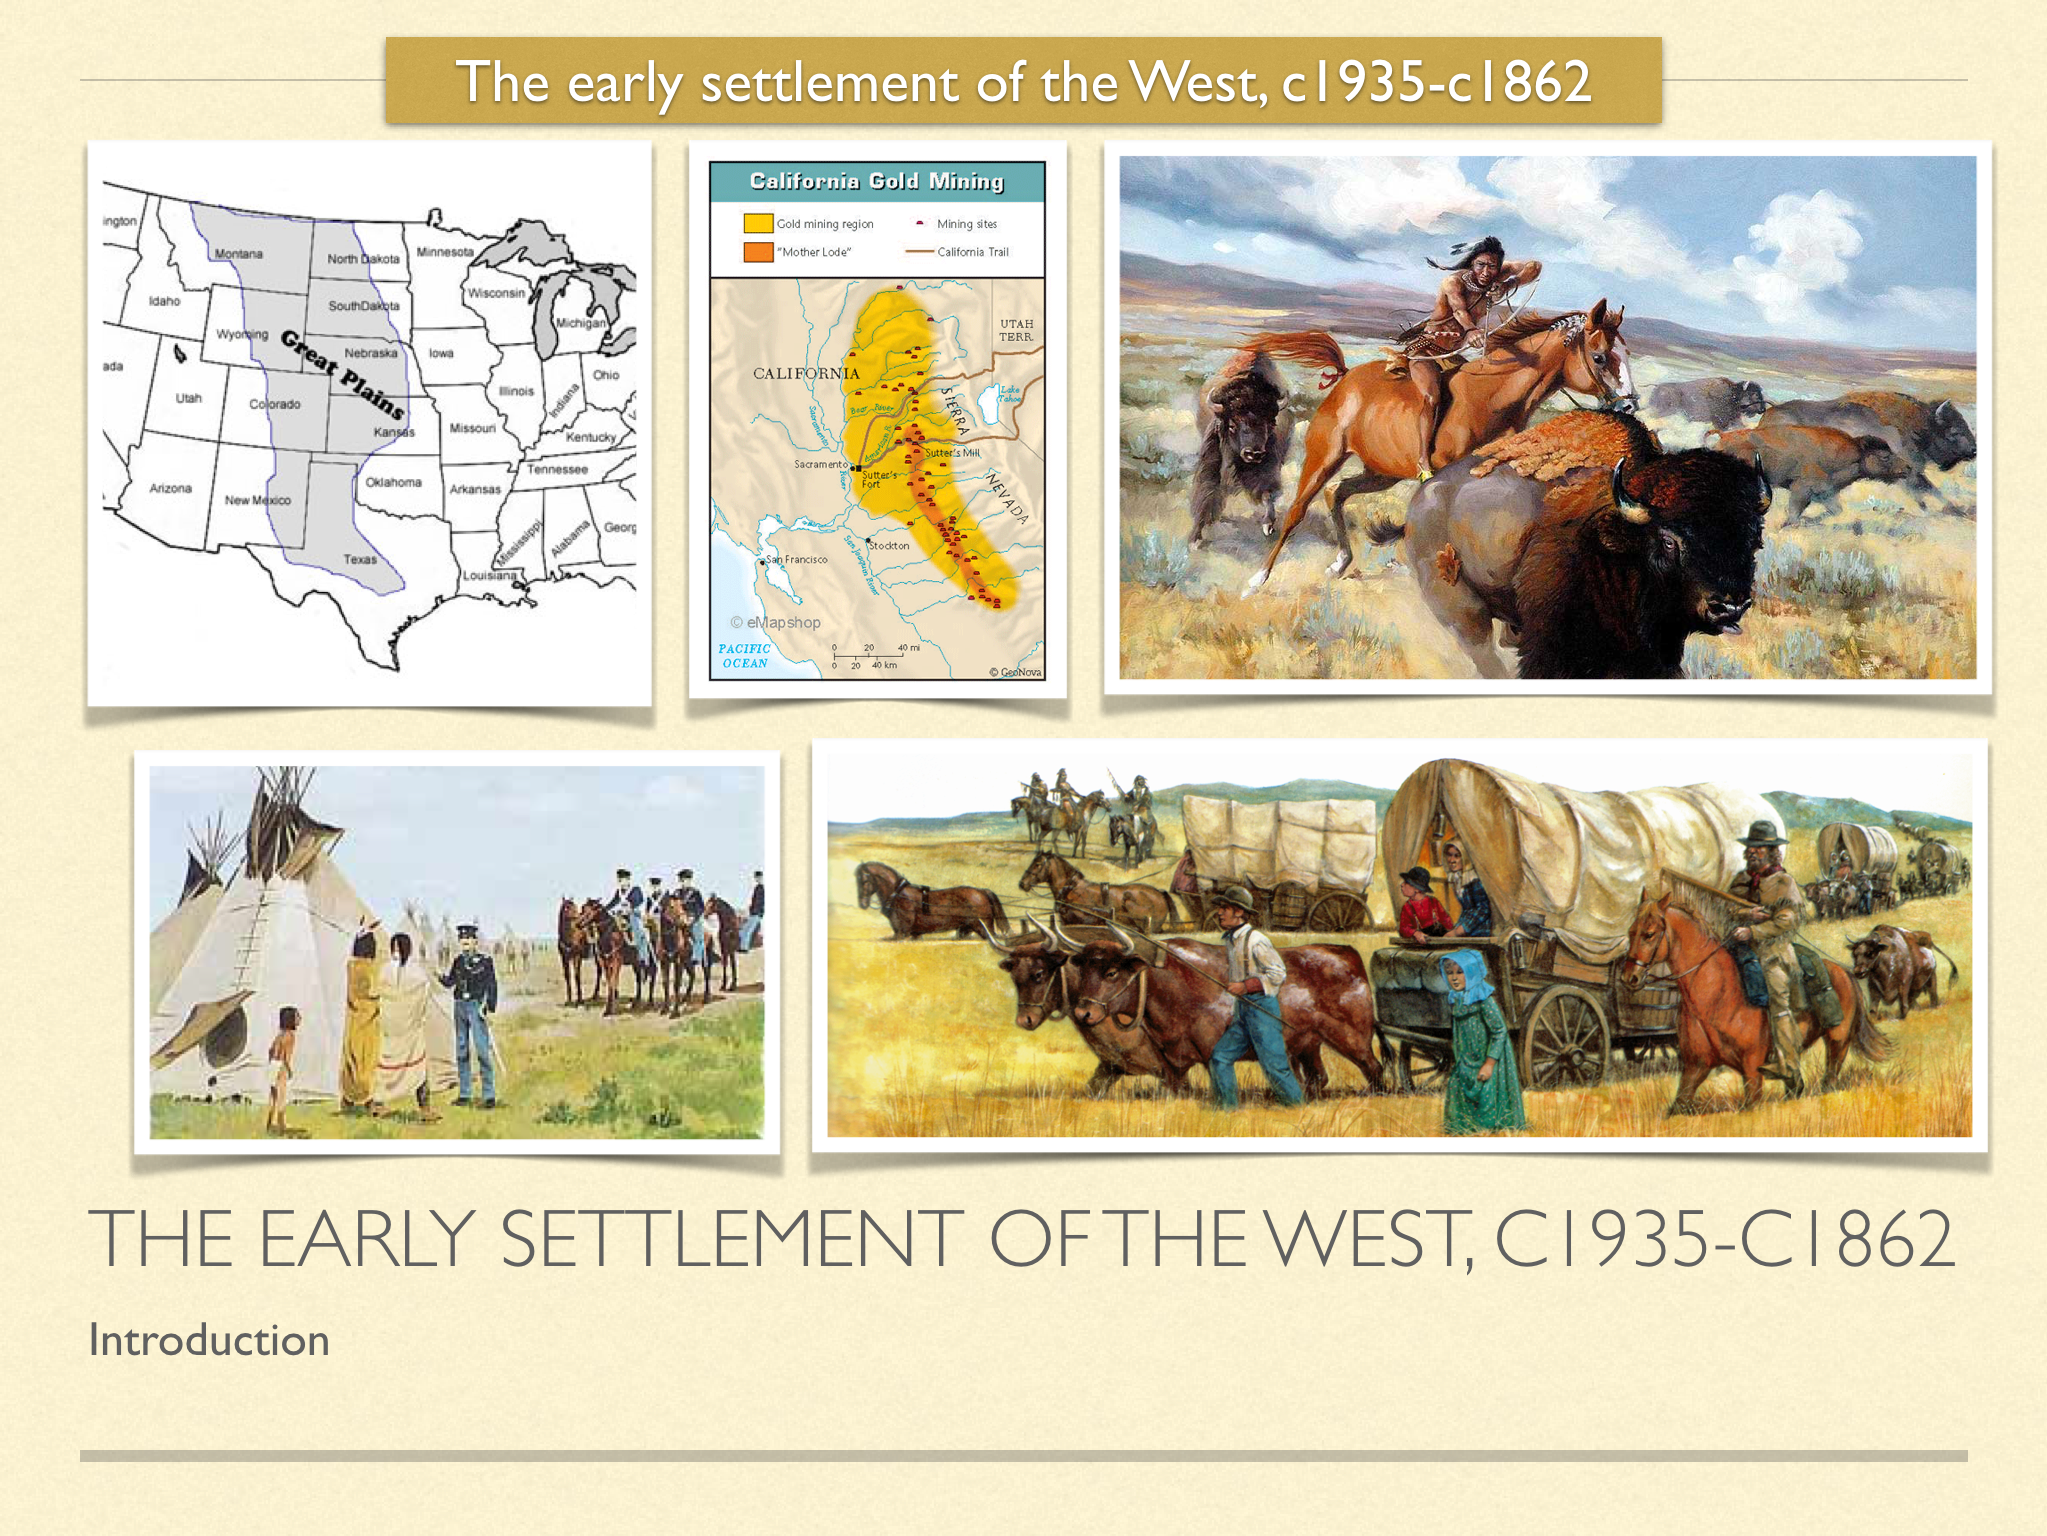 GCSE History of American West in 1800s. Unit 1 Early Settlement of the West